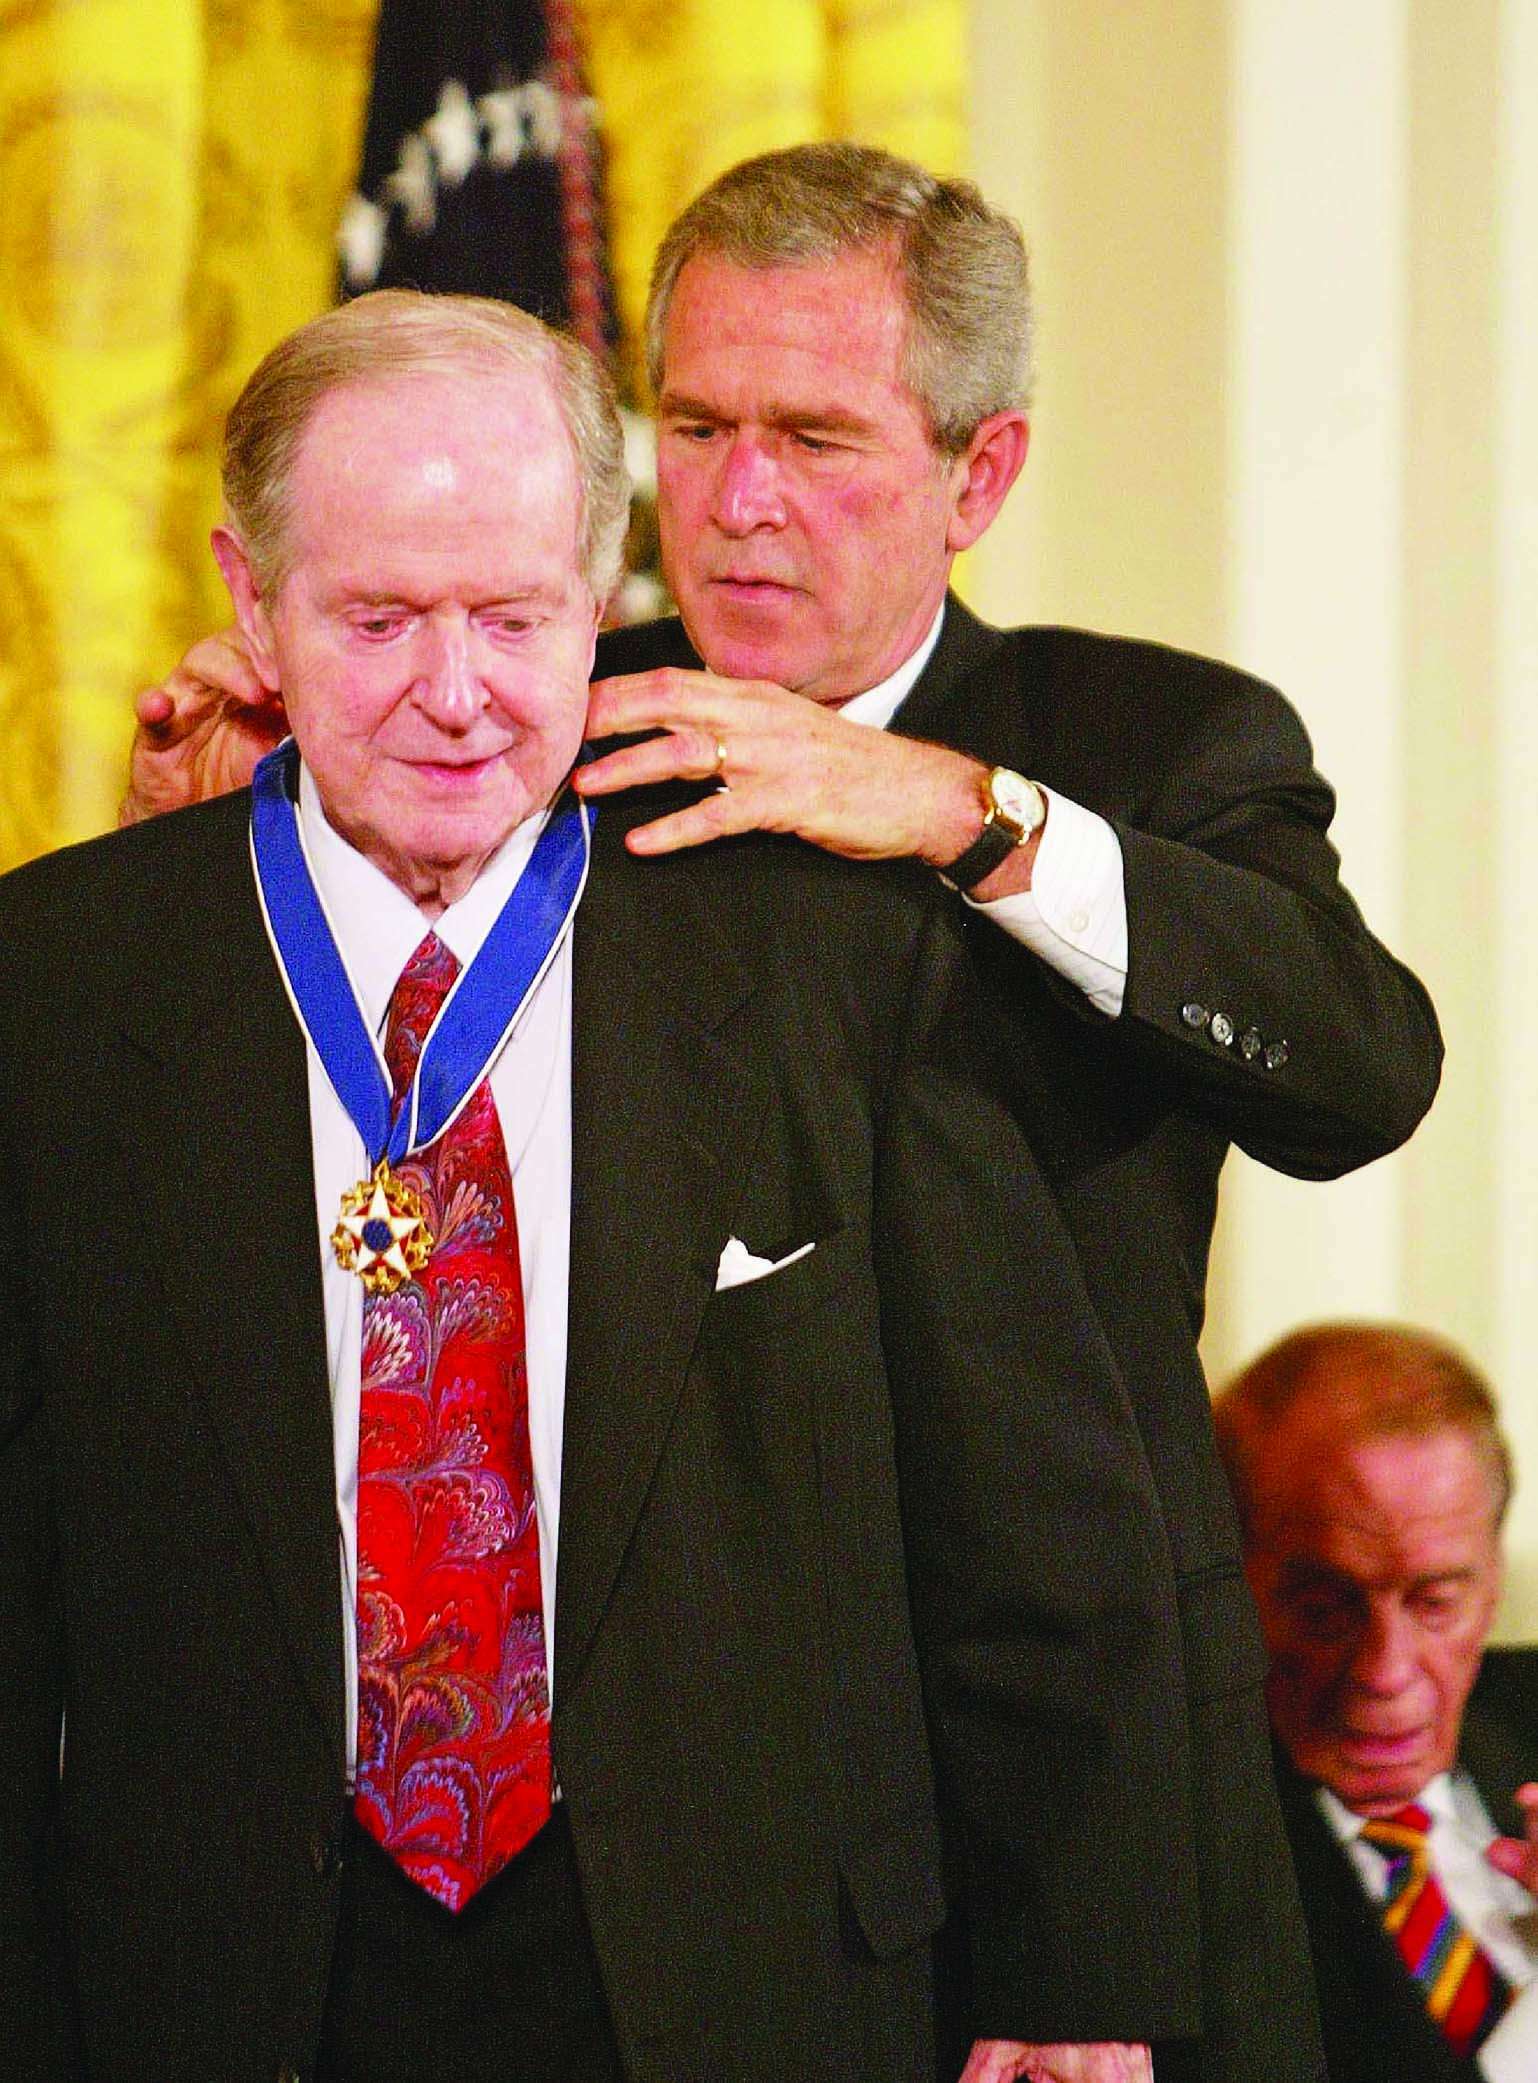 Robert Conquest receiving the Presidential Medal of Freedom